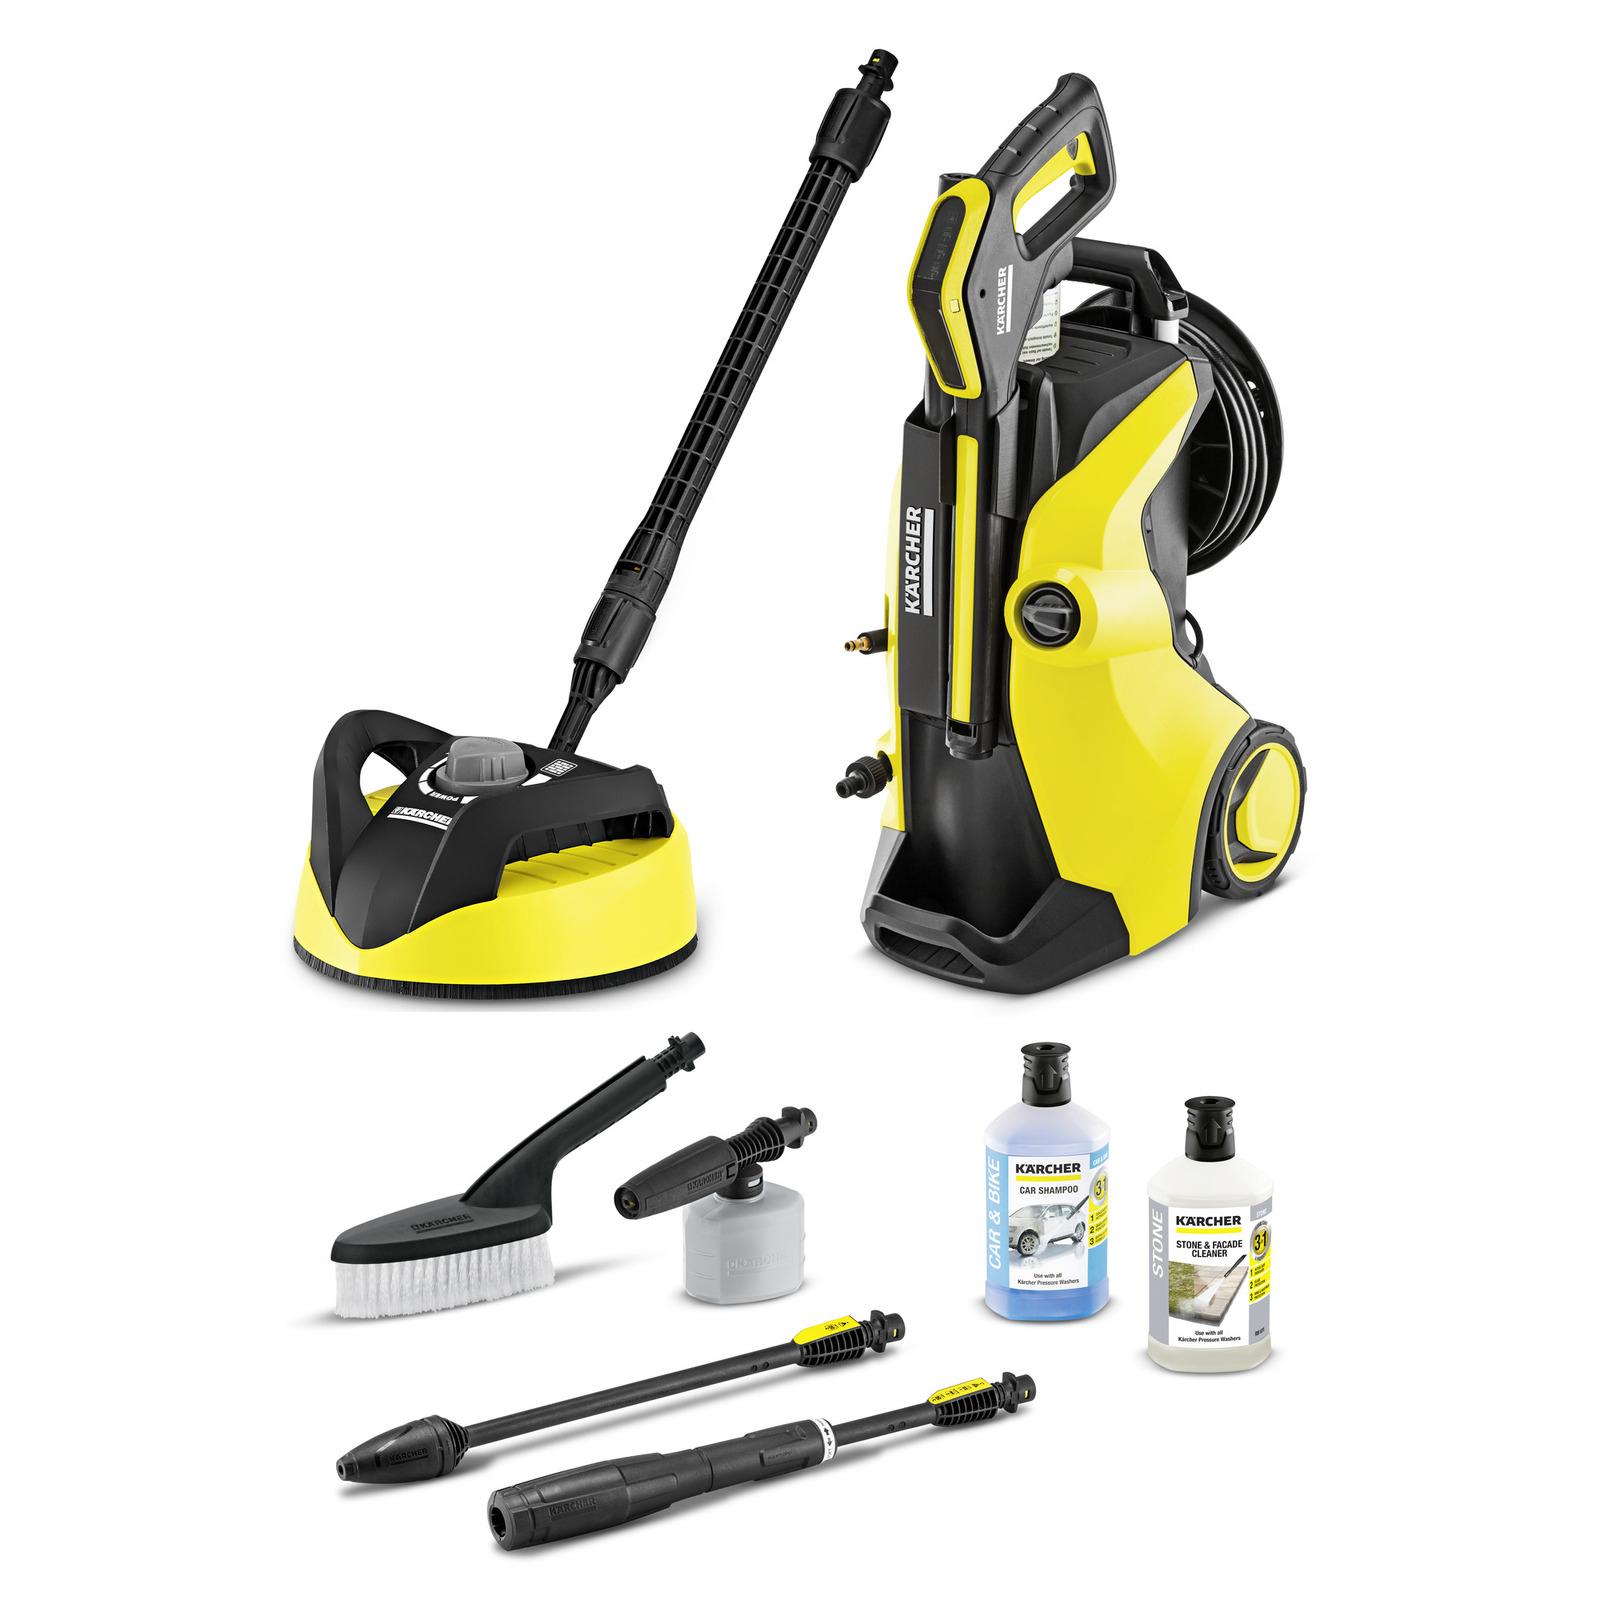 karcher k 5 premium full control car home pressure washer k5 ebay. Black Bedroom Furniture Sets. Home Design Ideas